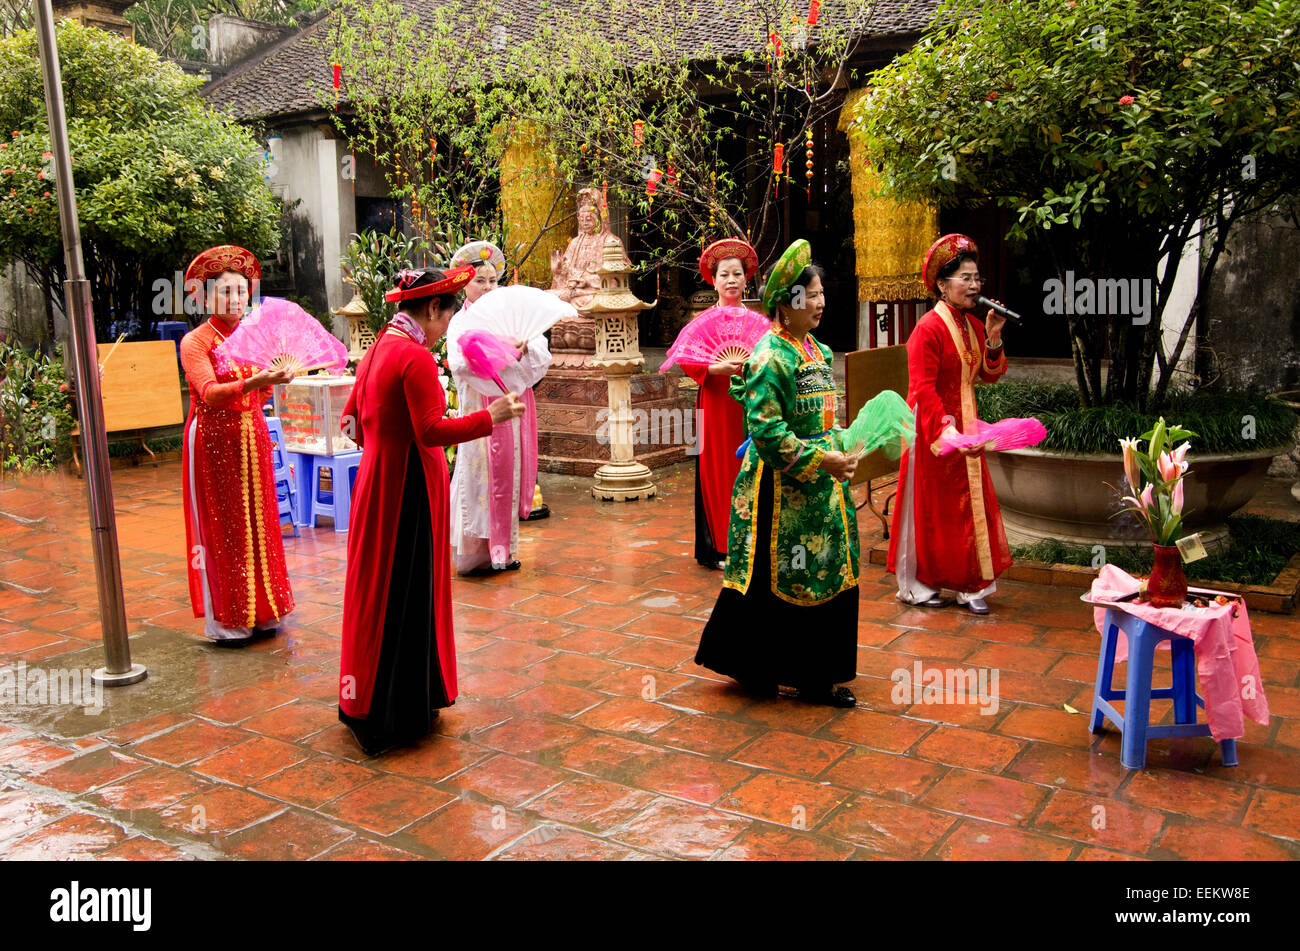 Ho Chi Minh complex, 6 classically dresses women perform traditional dance routine. - Stock Image